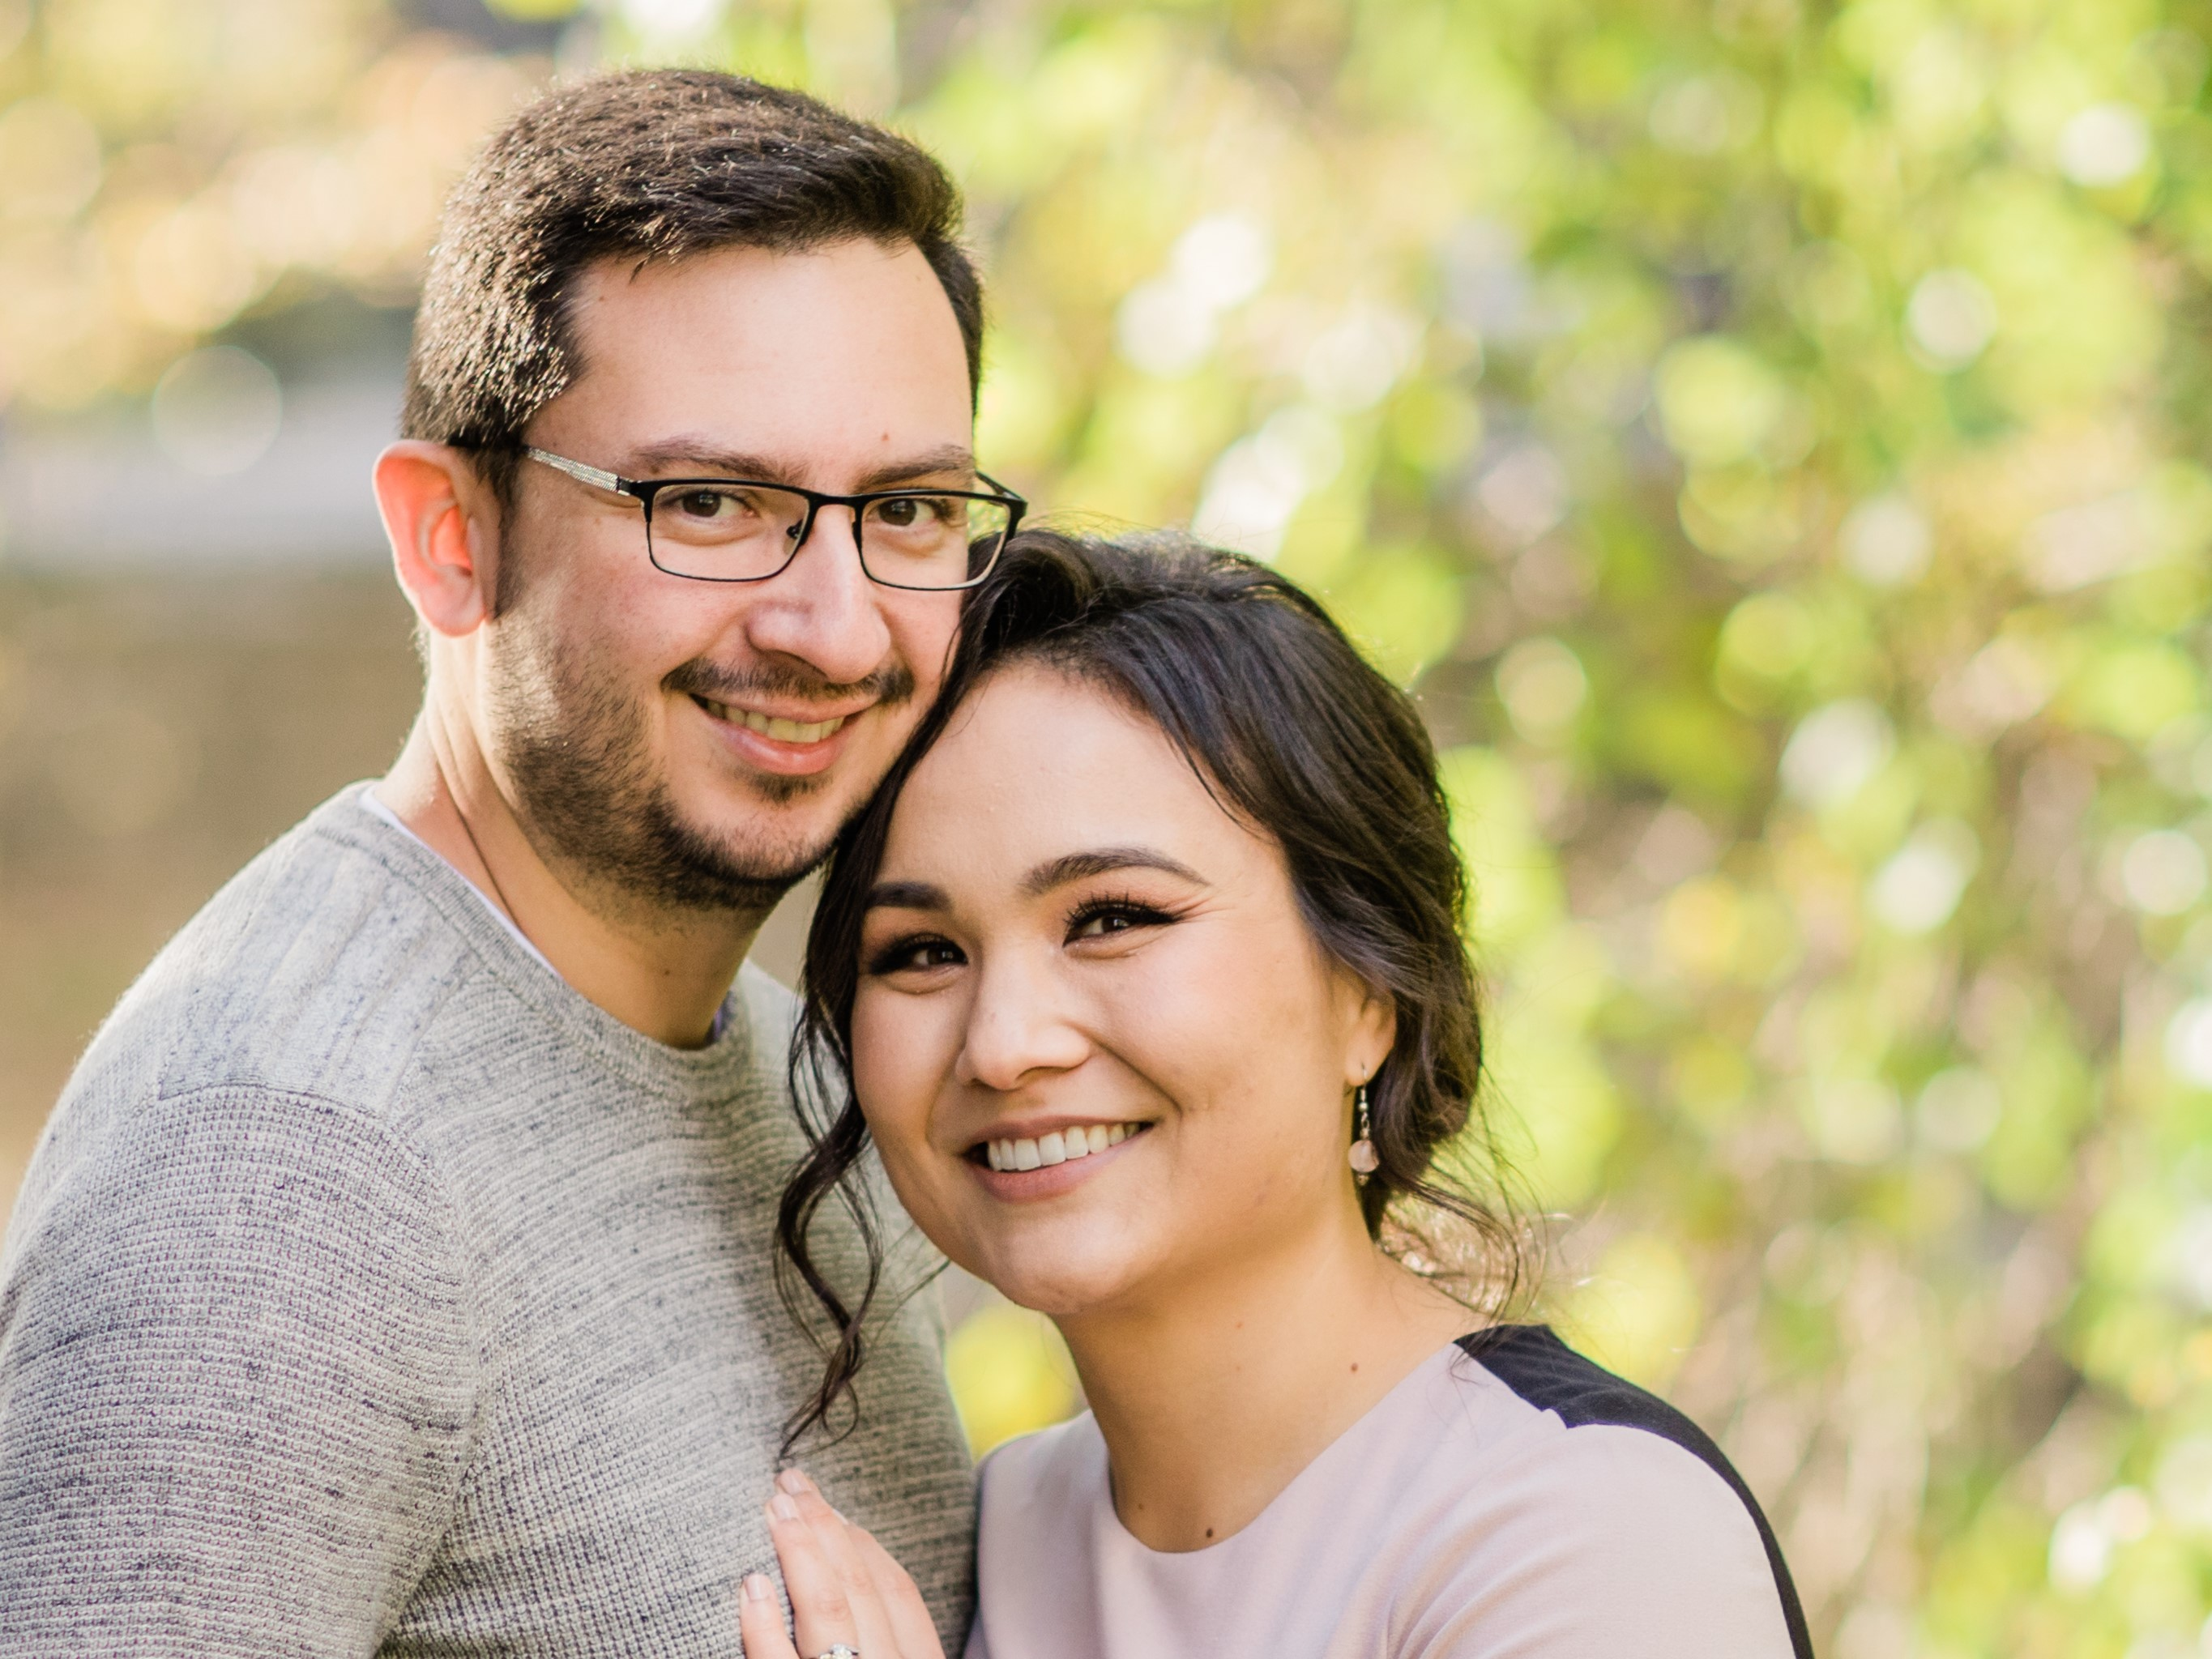 Prayer newlyweds marriage for Marriage Advice